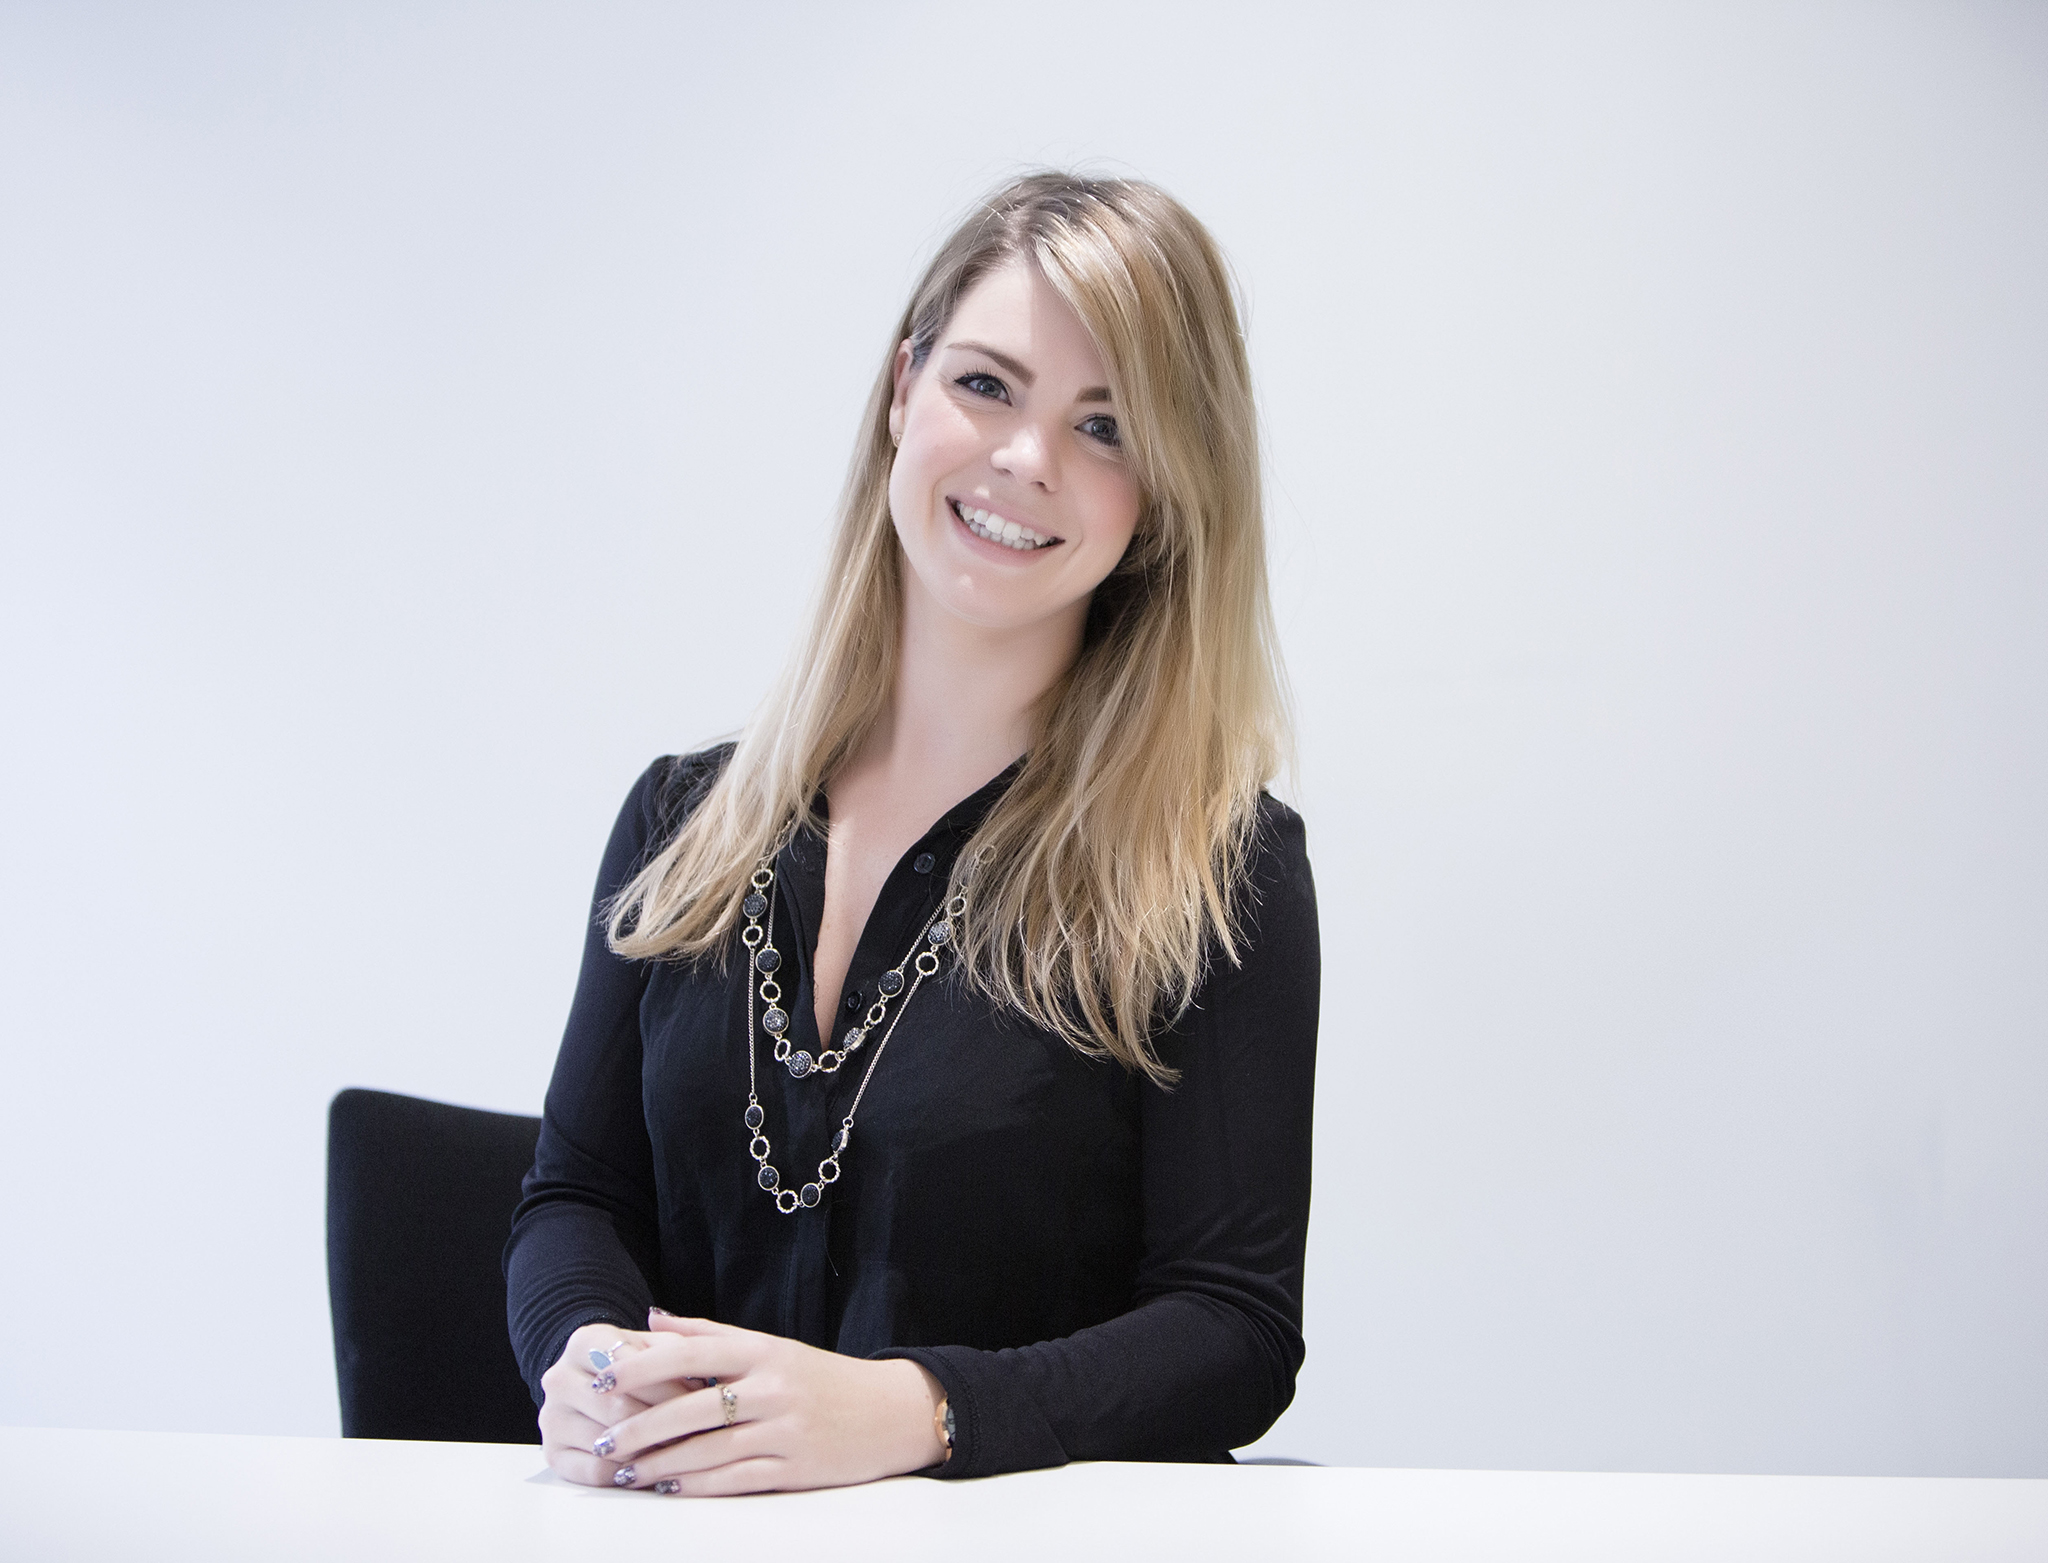 Elizabethg_fineart_photography_kingslangley_hertfordshire_onlocation_business_corporate_headshot_016.jpg